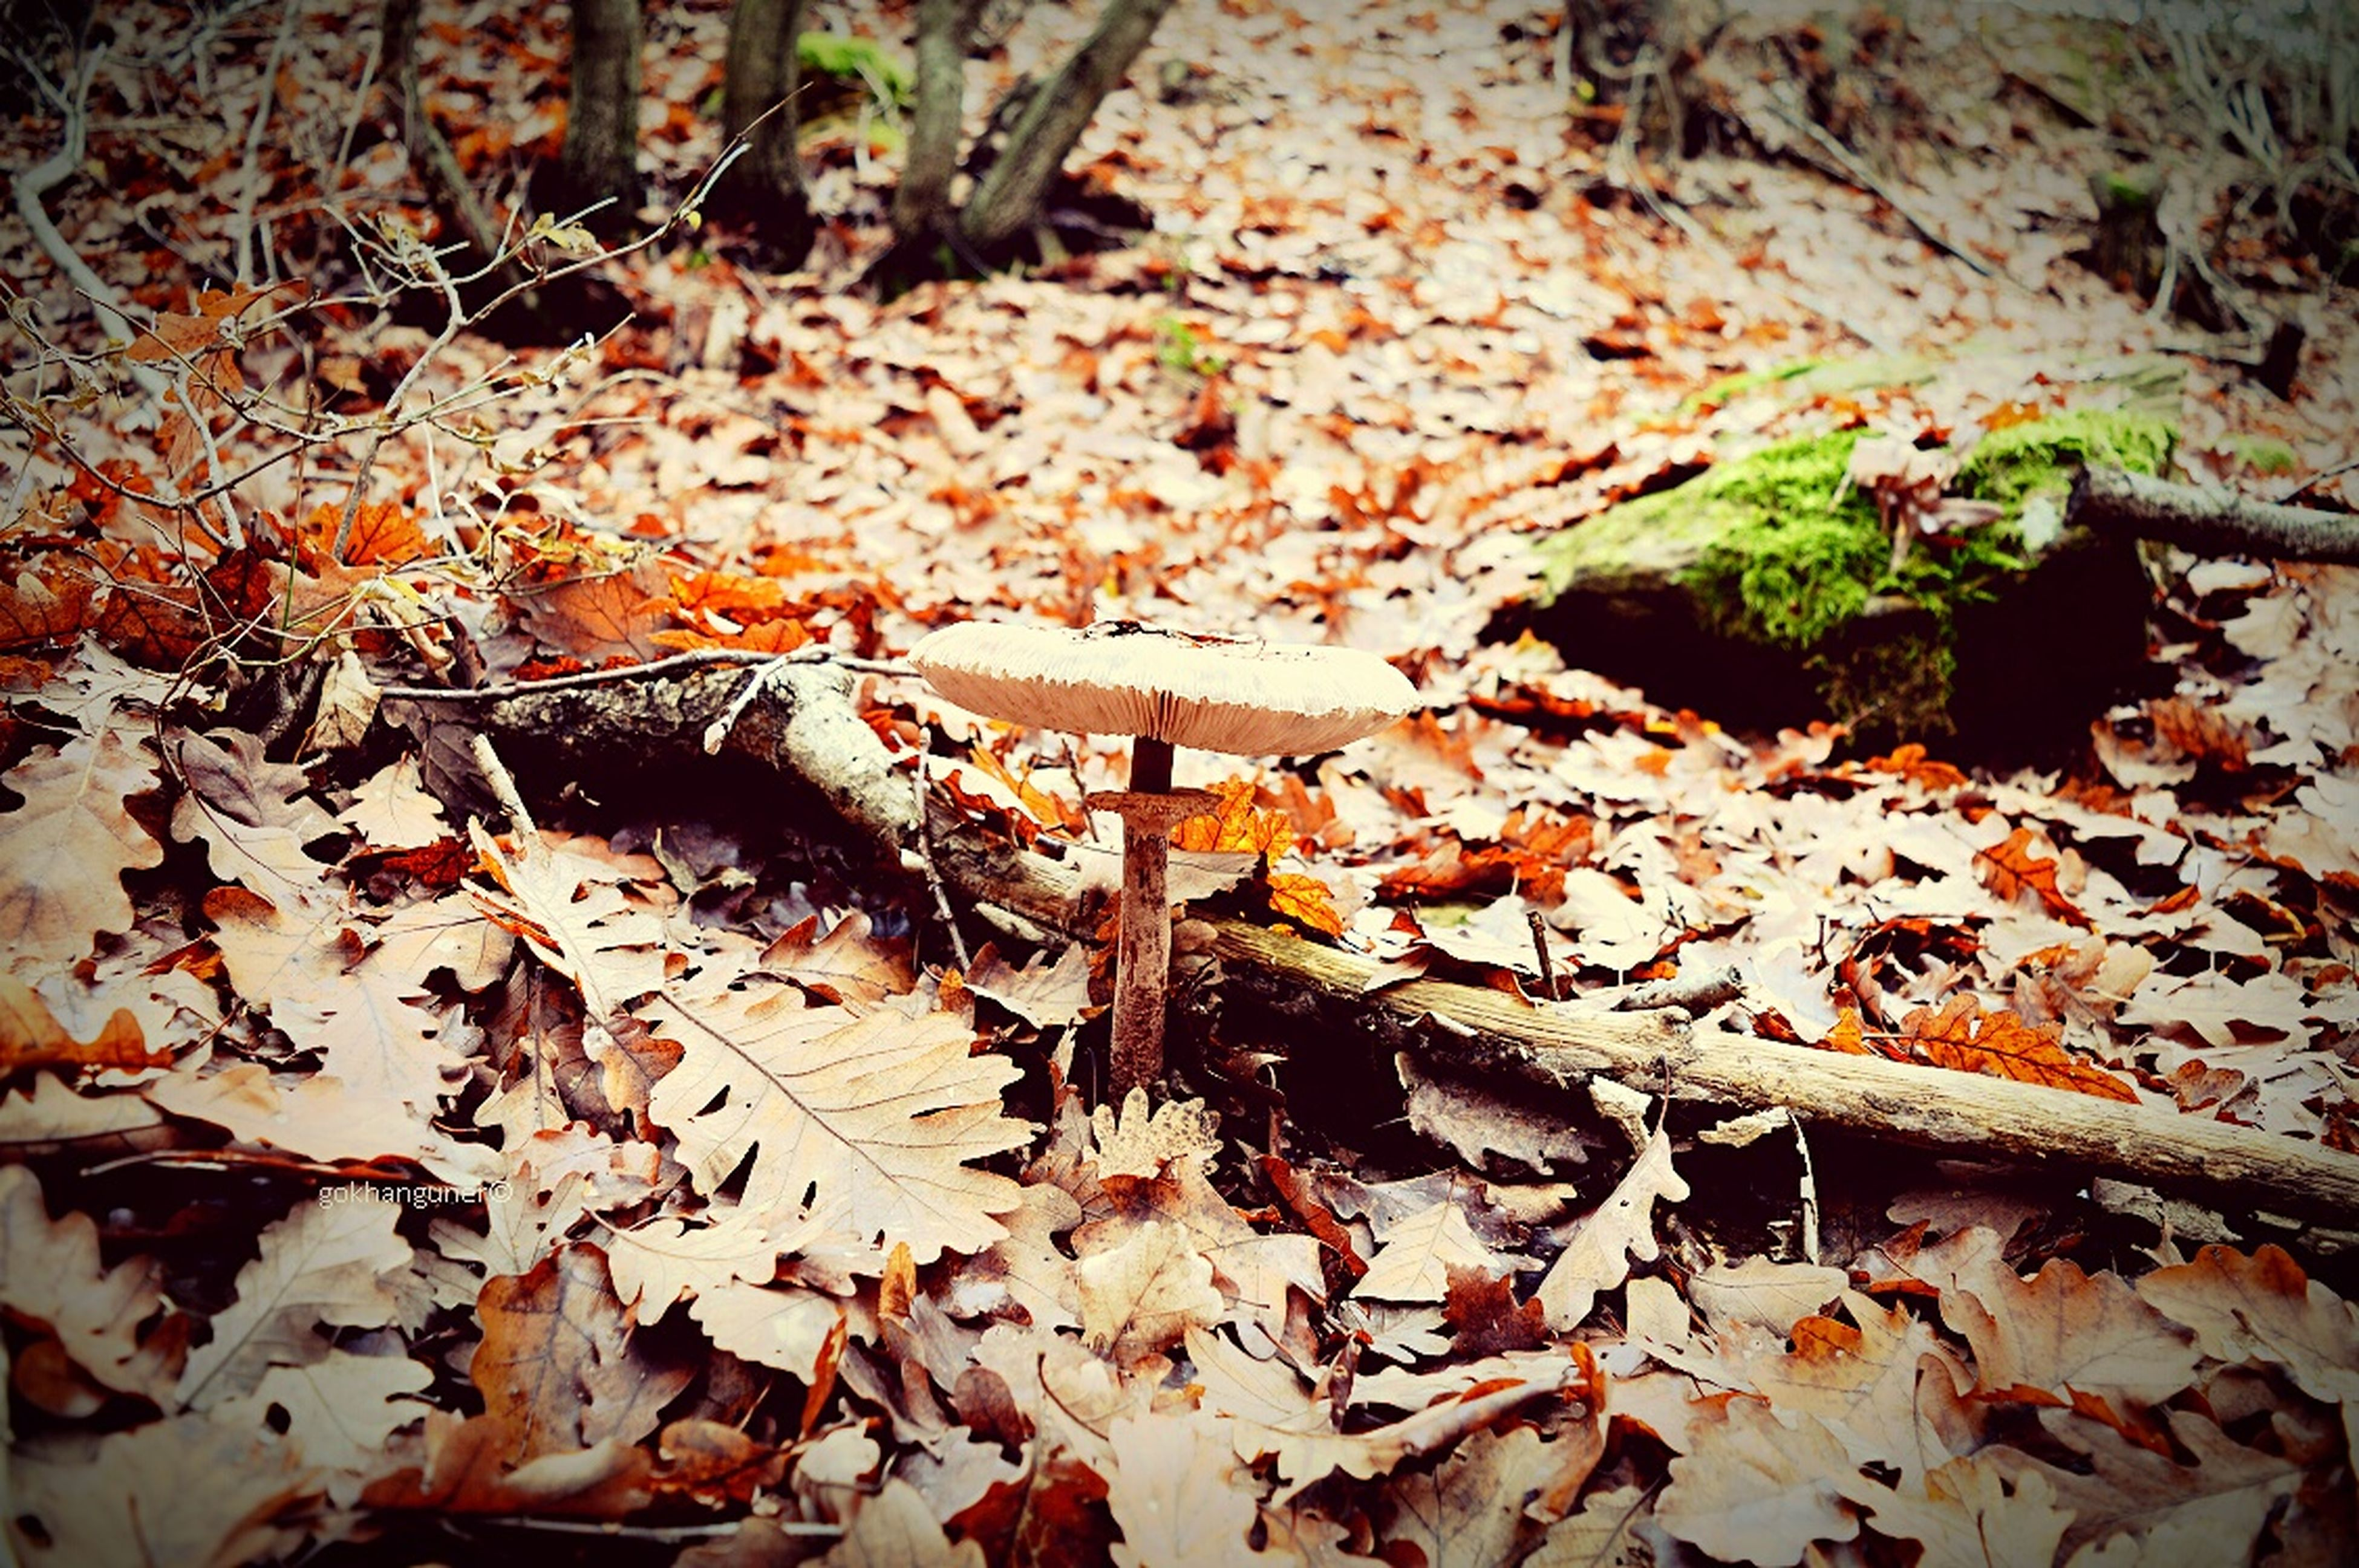 leaf, autumn, change, dry, leaves, fallen, high angle view, nature, season, forest, tranquility, ground, falling, plant, growth, day, field, outdoors, close-up, maple leaf